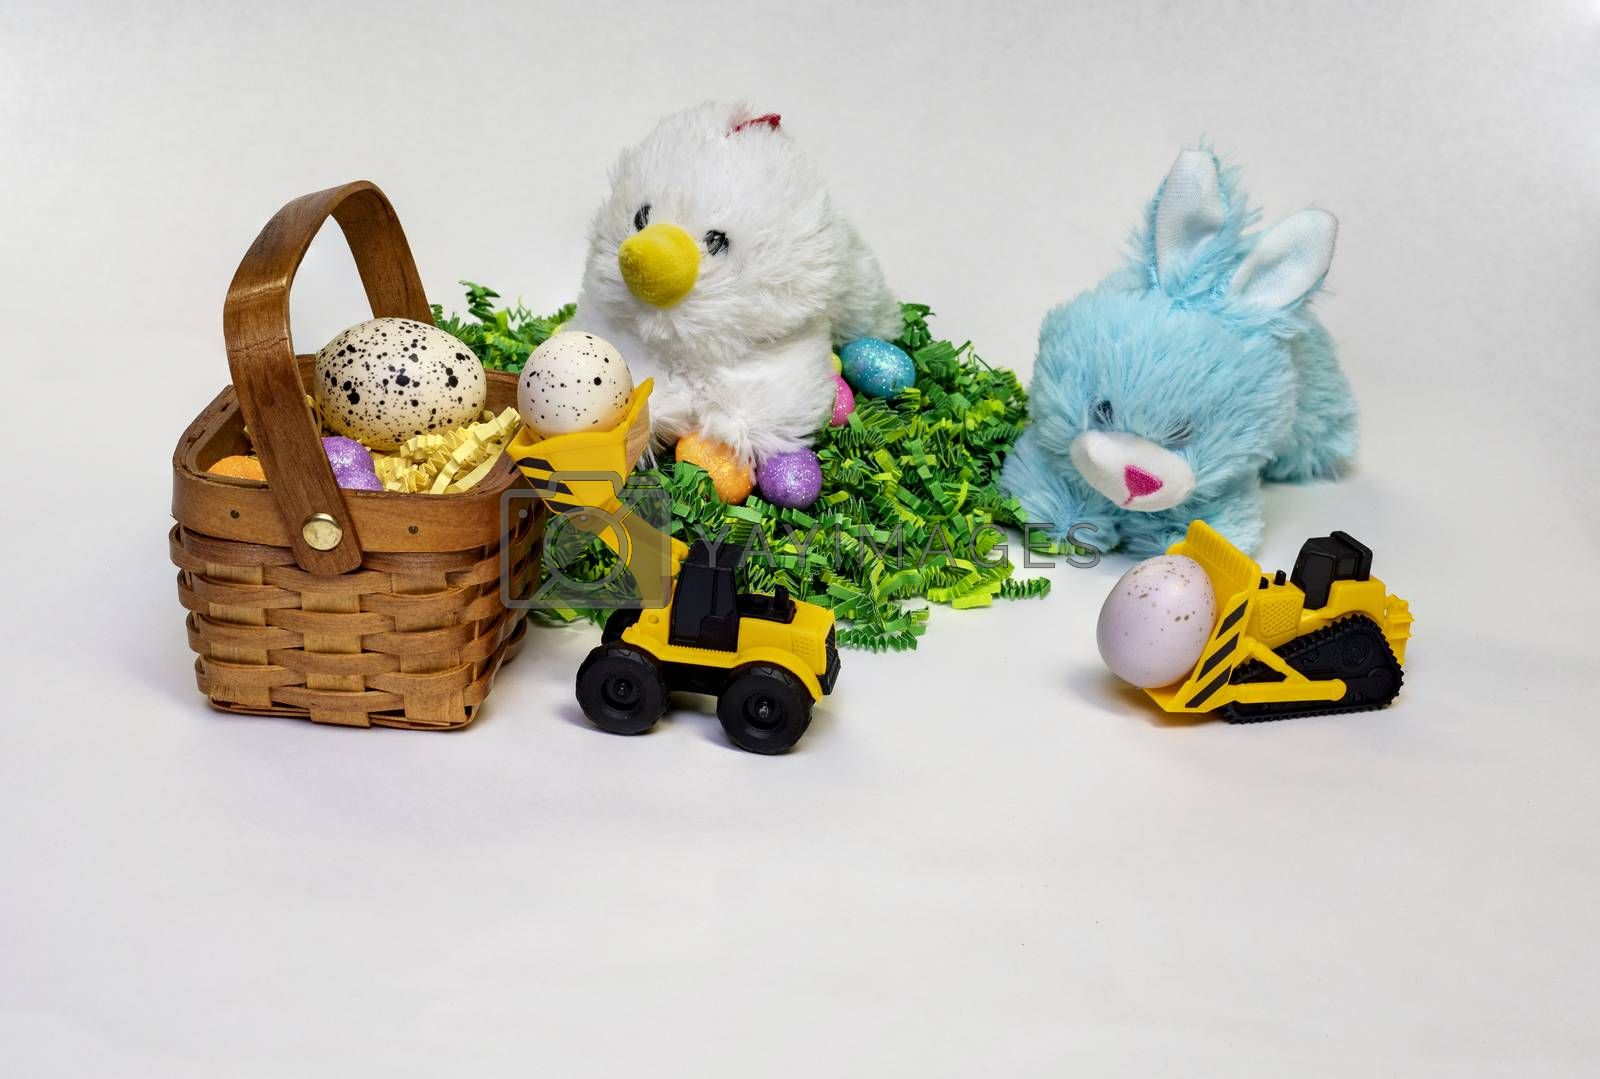 Easter themed photo of stufed bunny and hen with decorated Easter eggs, a basket,  and a child's toy construction vehicles.